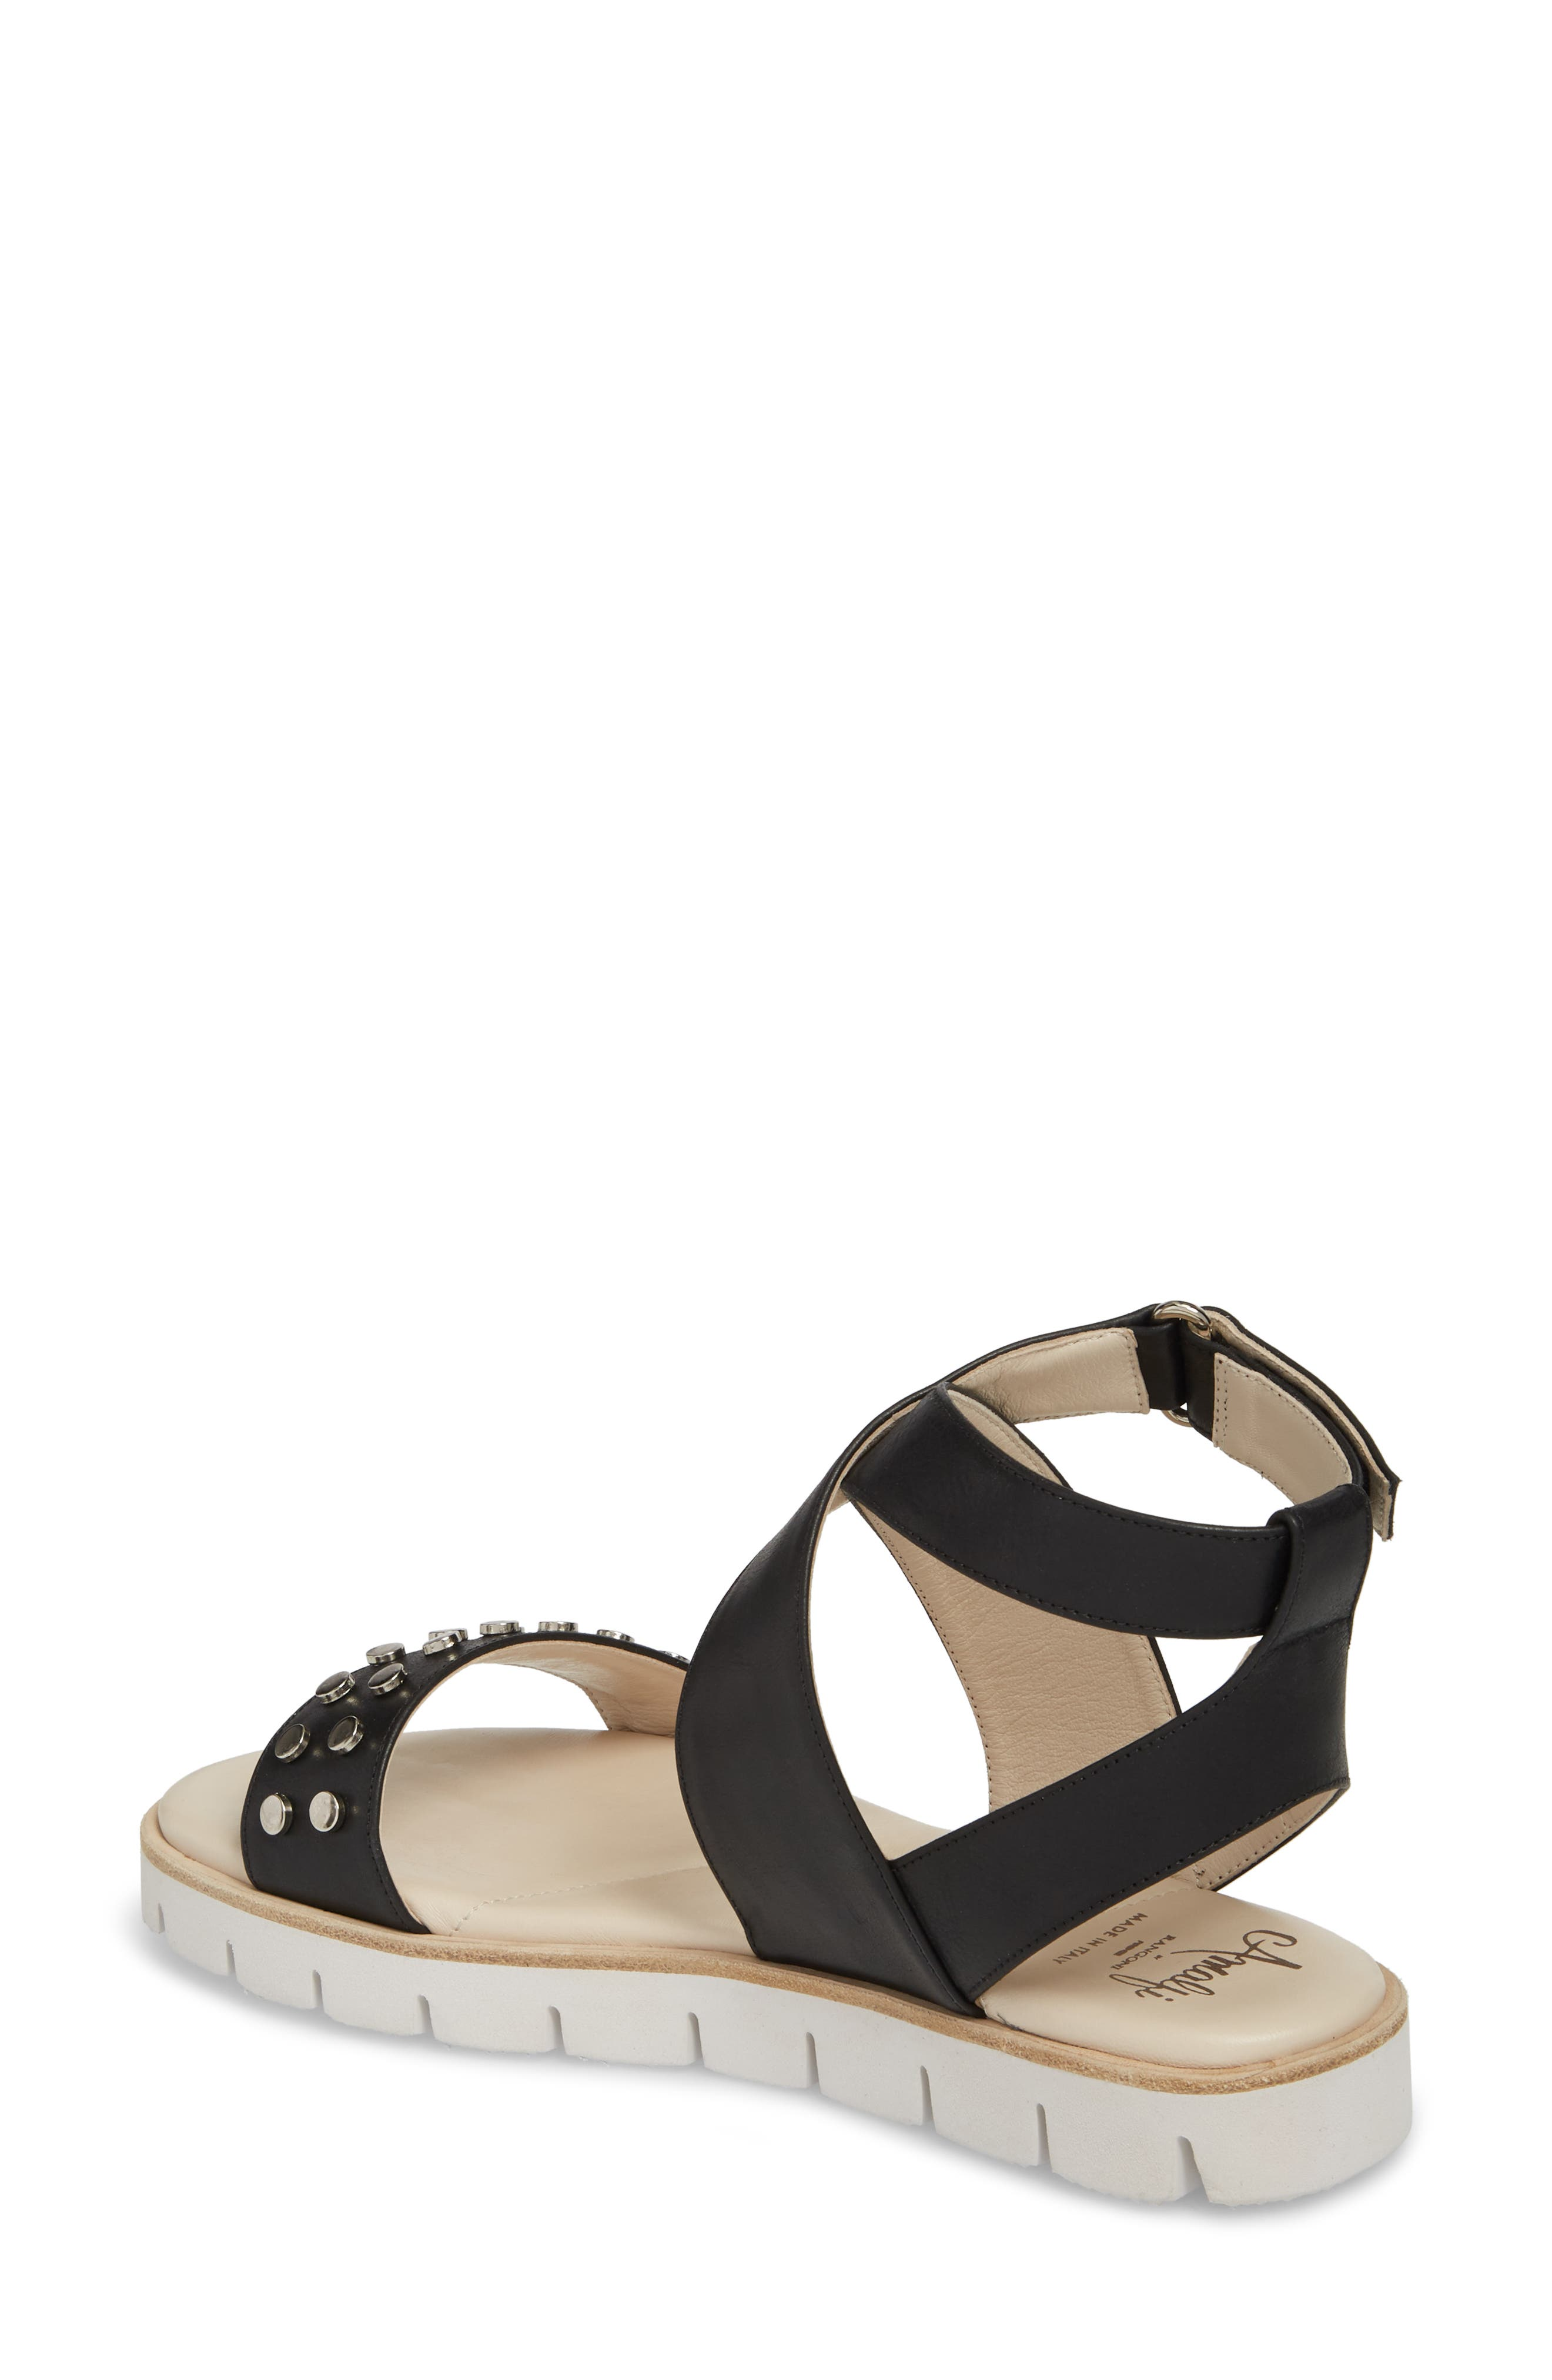 Barlume Sandal,                             Alternate thumbnail 2, color,                             BLACK LEATHER